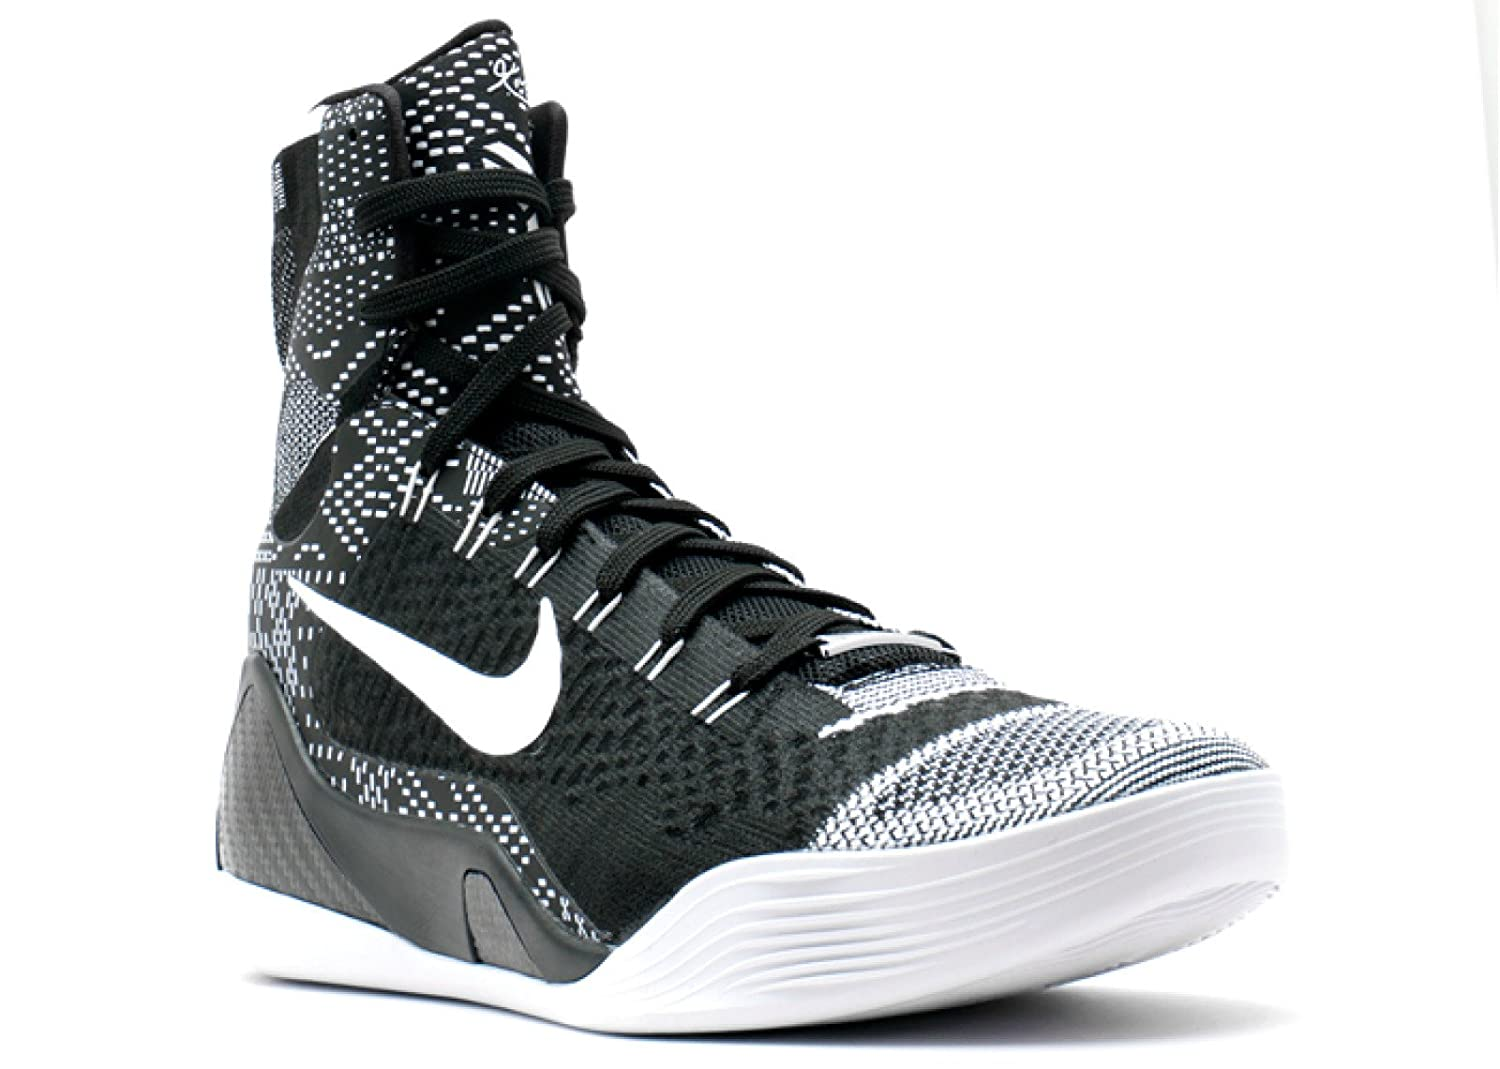 buy online 0e100 8b029 Amazon.com   Nike Kobe 9 Elite BHM - 704304-010   Shoes